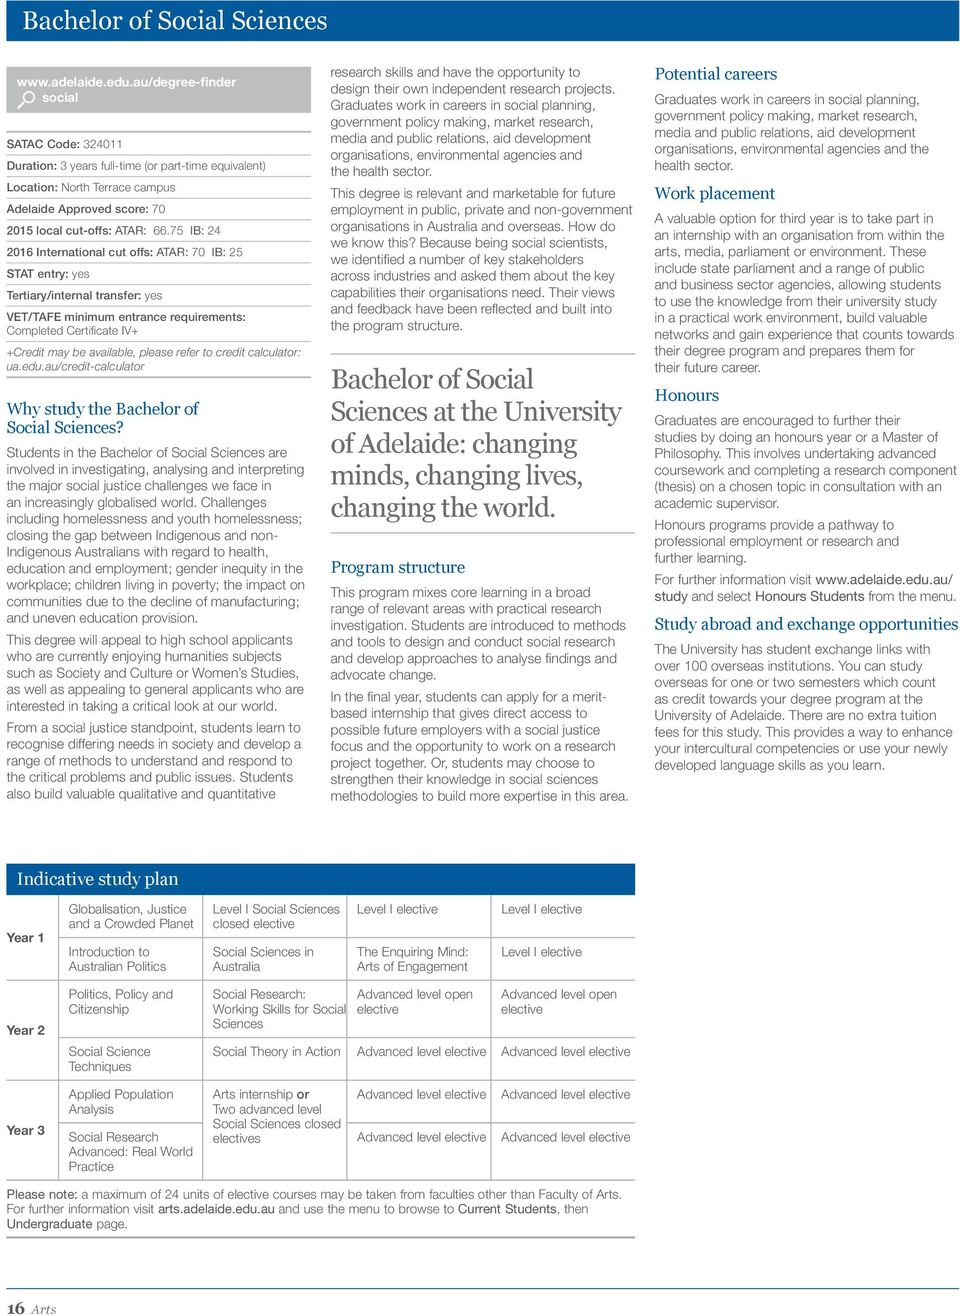 Students in the Bachelor of Social Sciences are involved in investigating, analysing and interpreting the major social justice challenges we face in an increasingly globalised world.